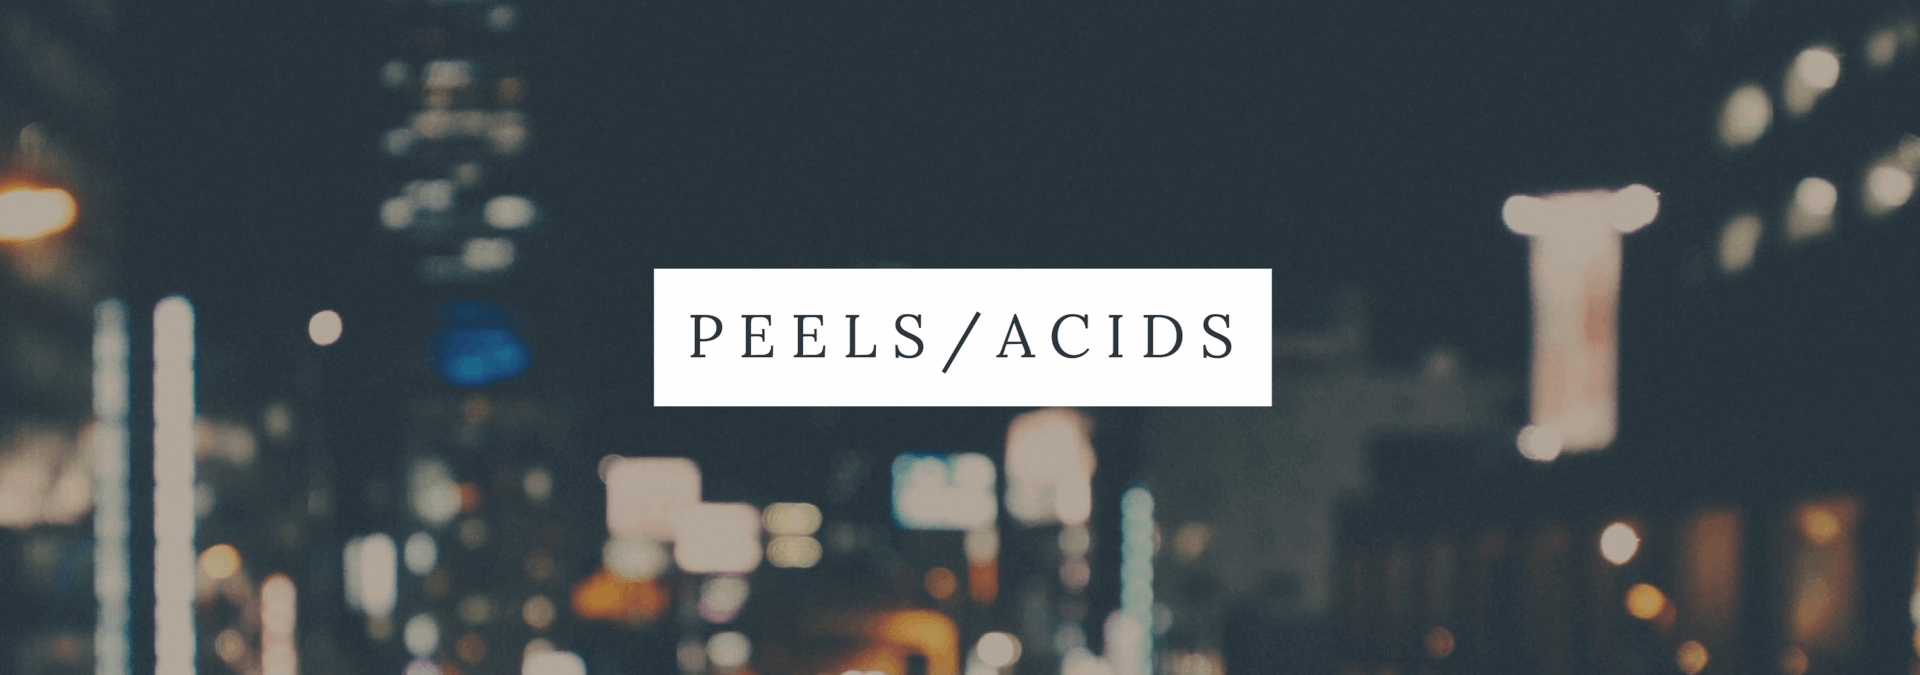 Acids, chemical peels and glowing skin